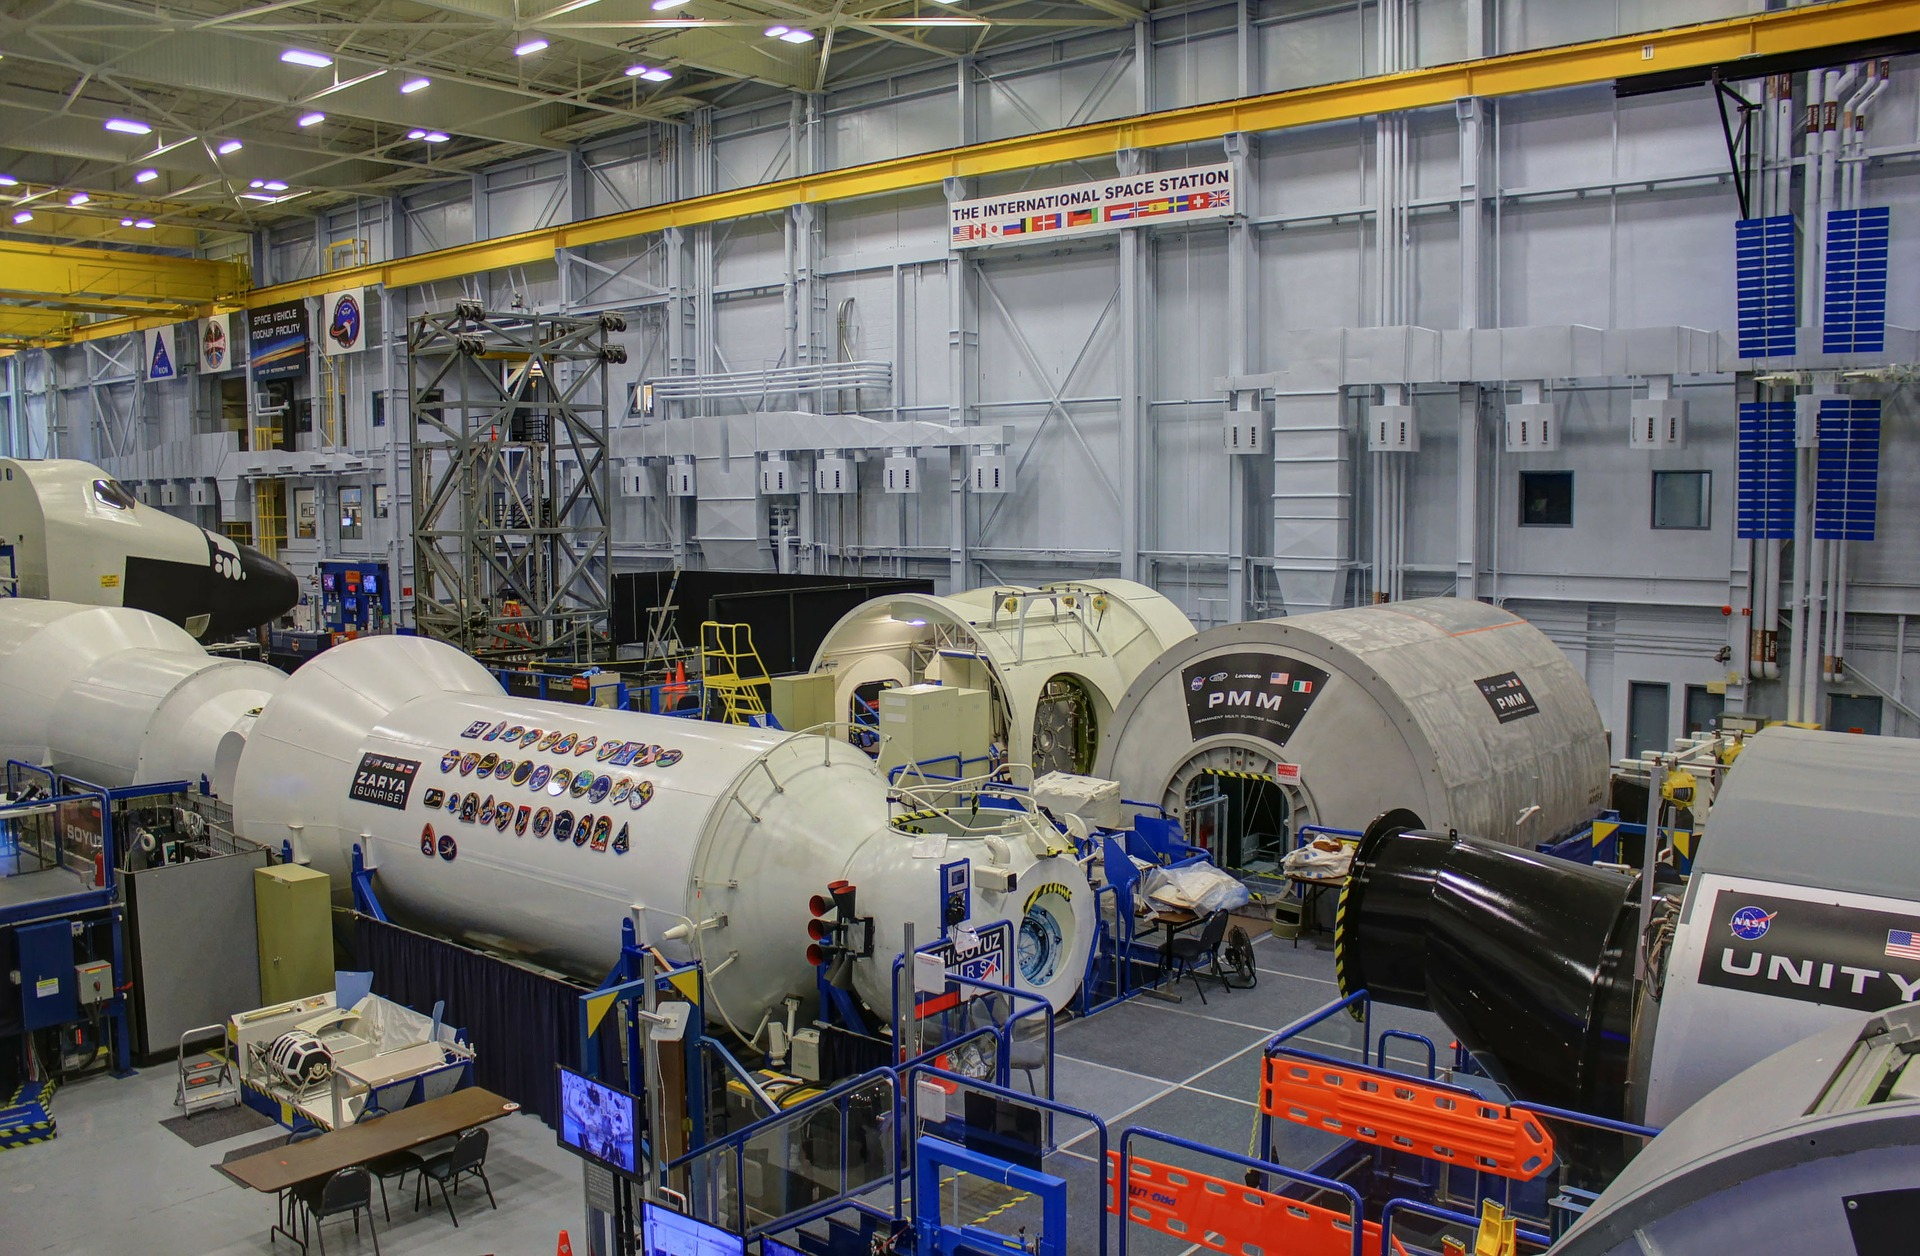 Space Center Houston - ISS training module - Top things to do in Houston for a first time visit